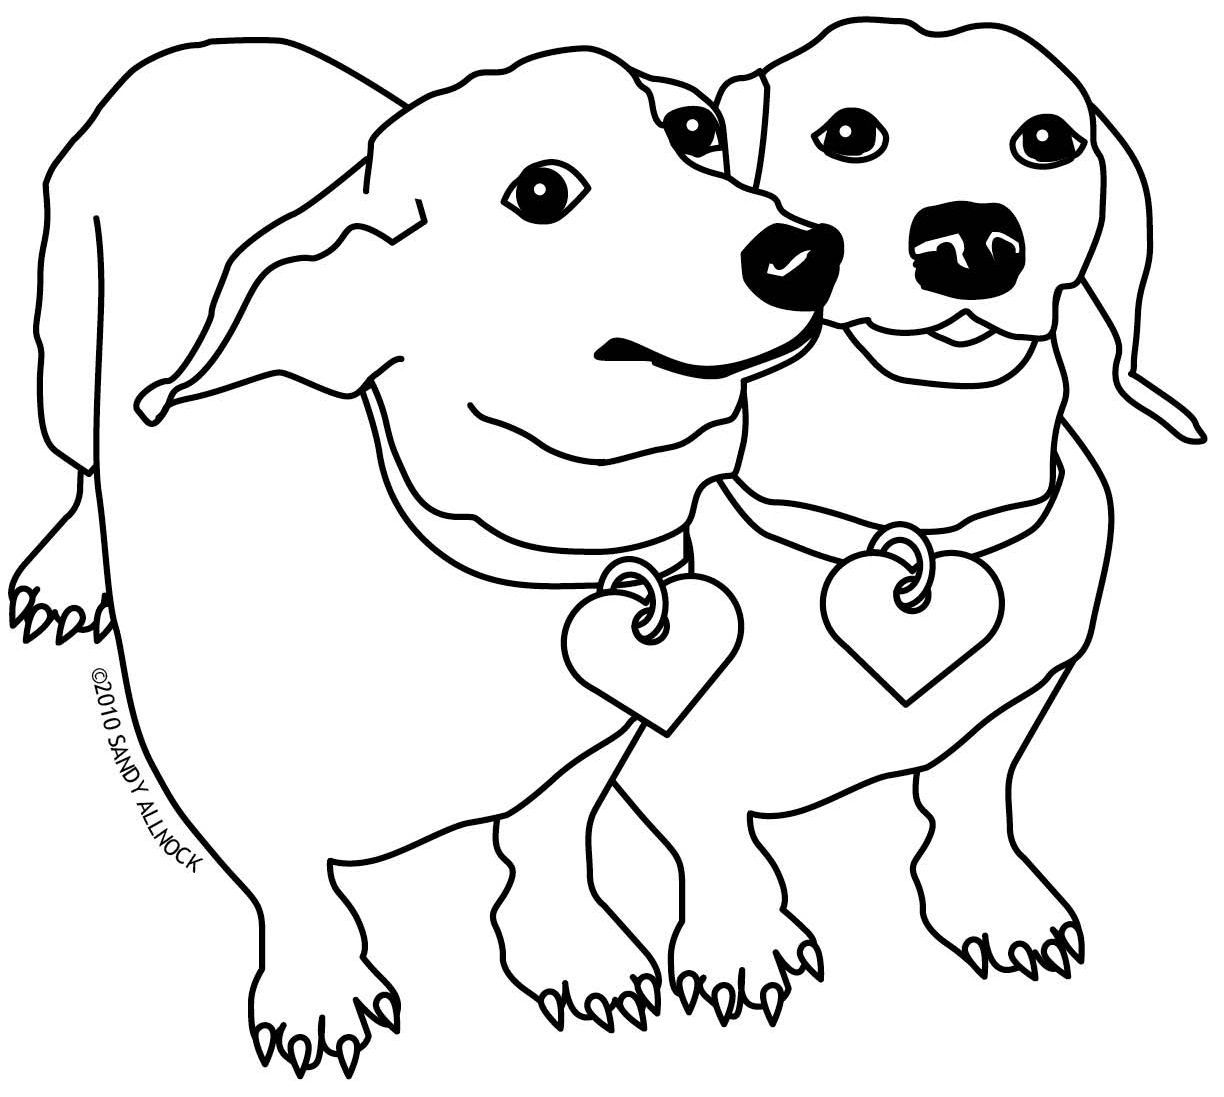 coloring pages of dogs printable puppy dog pals coloring pages download and print puppy printable coloring dogs of pages